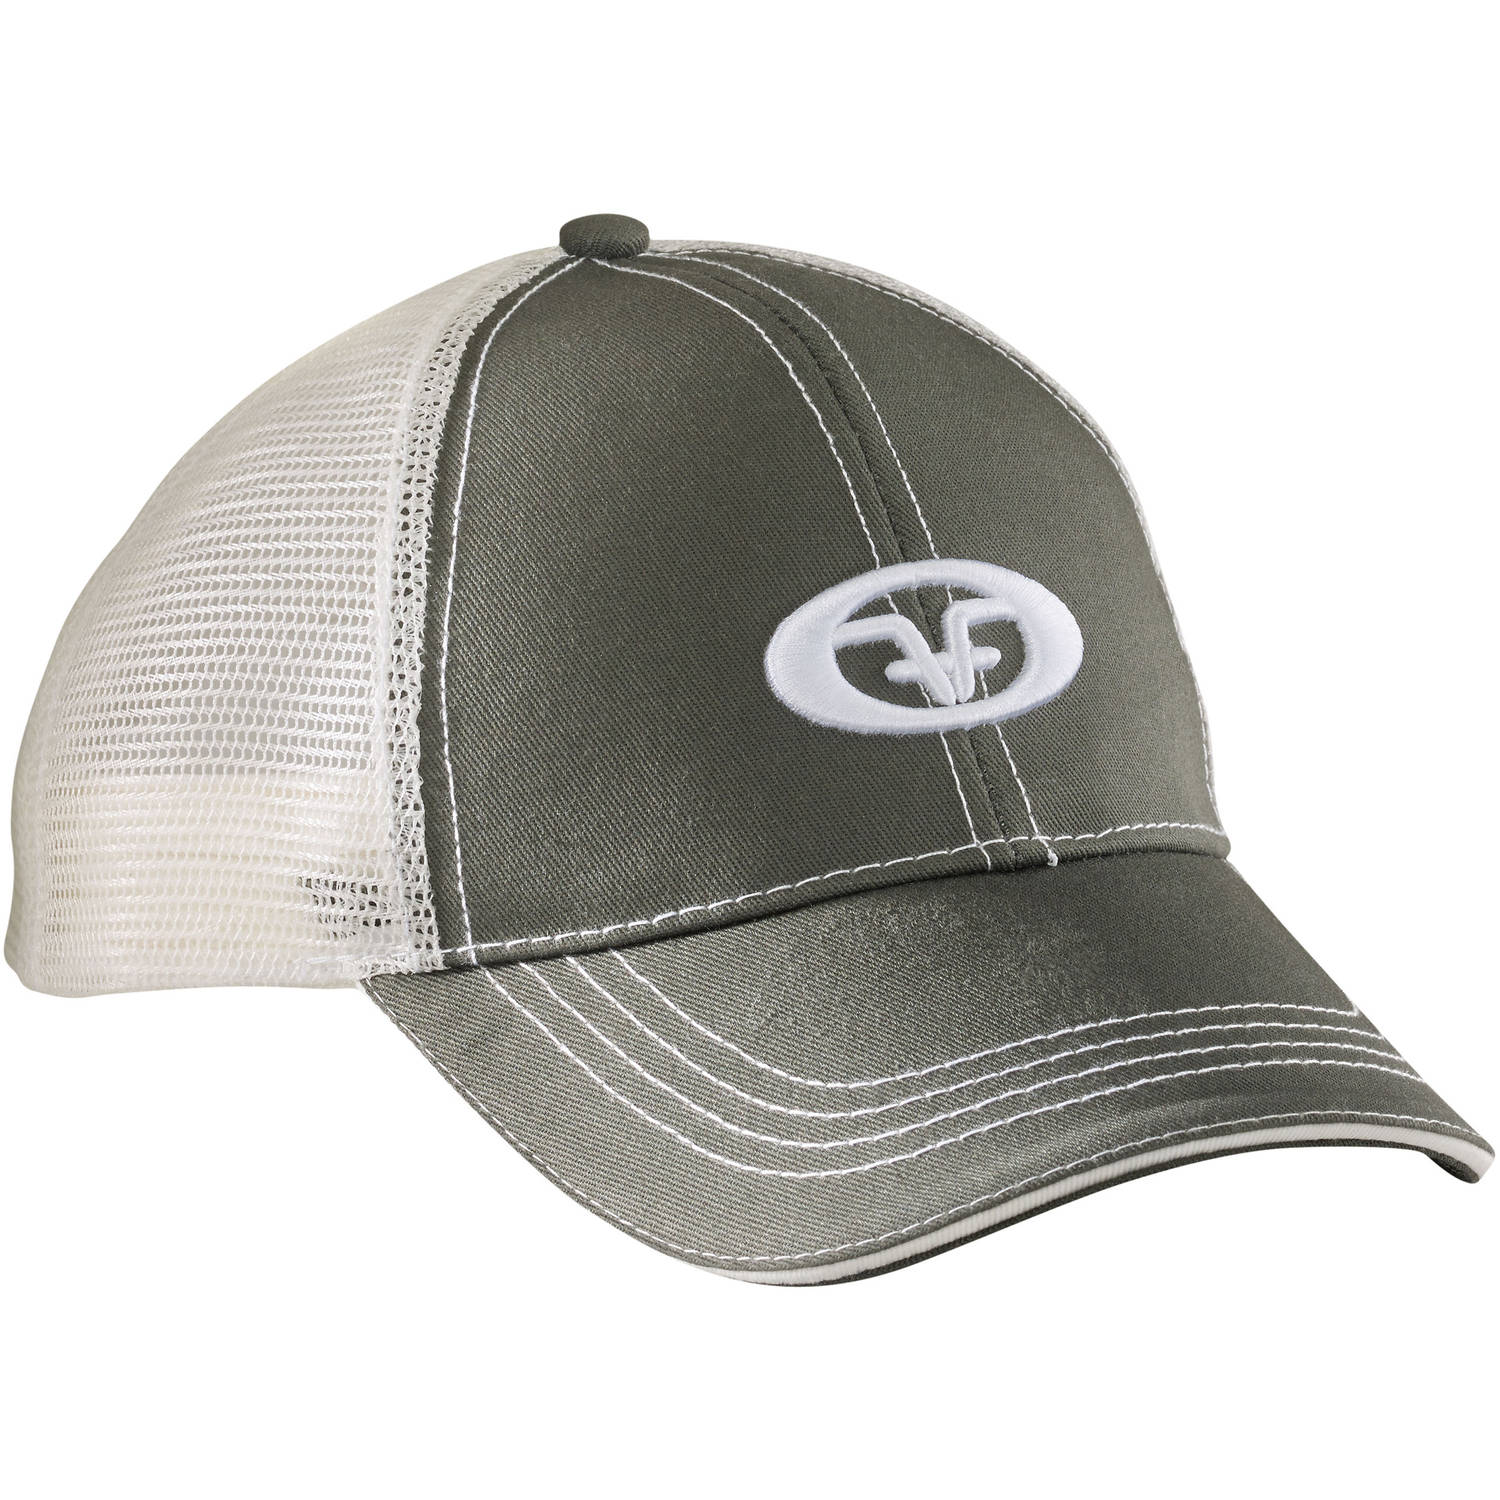 Flying Fisherman H1504 Logo Trucker Cap, Moss-Stone